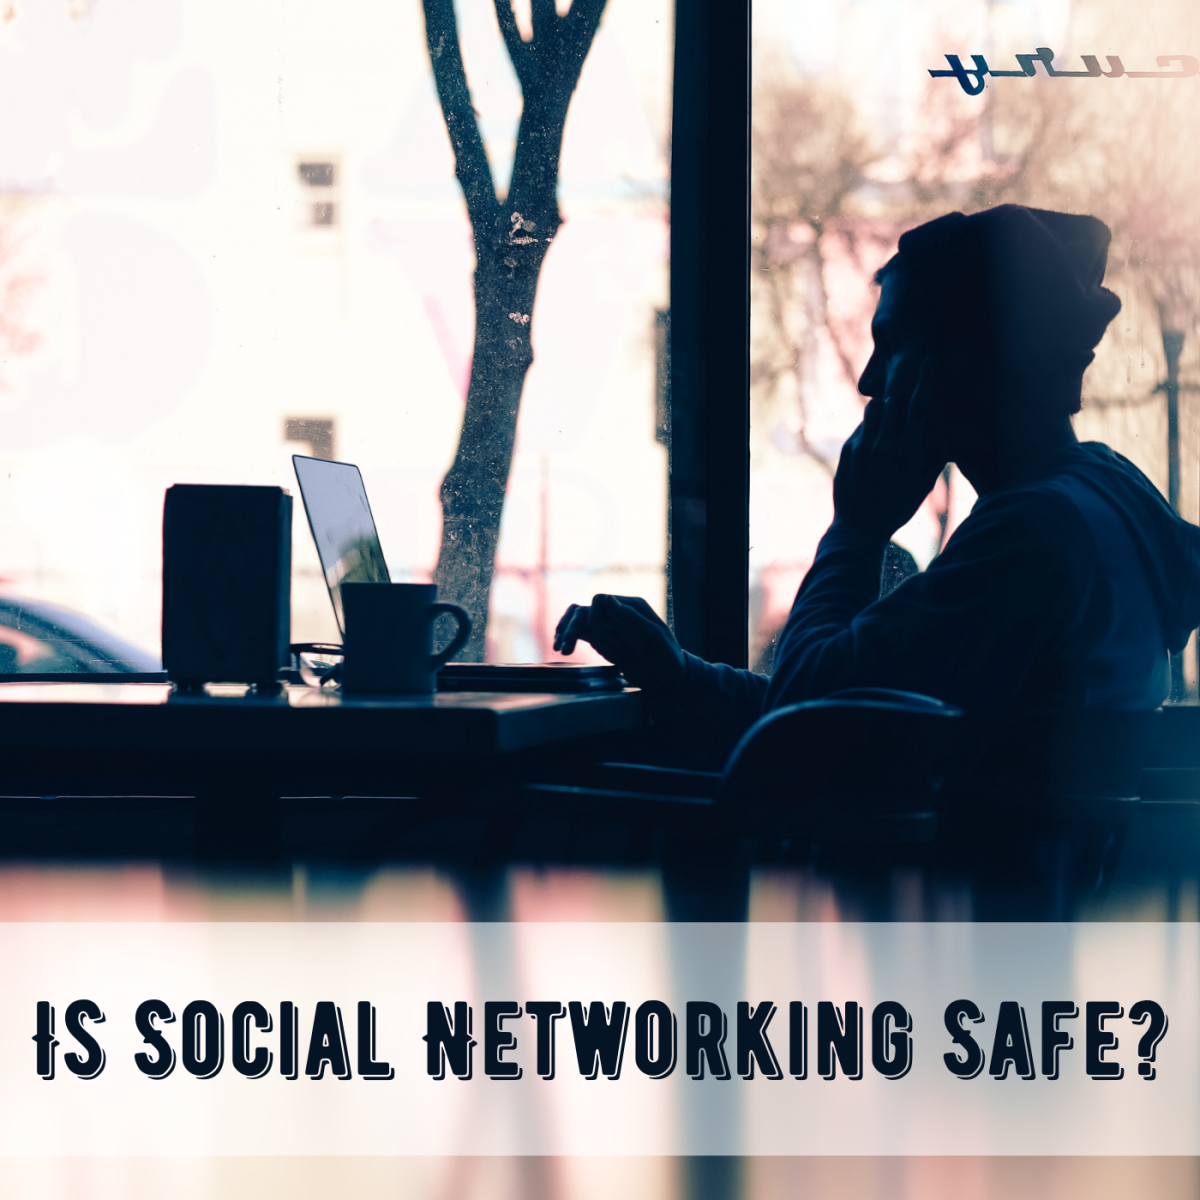 Social networking was created with good intentions, but it can have many dangers. Learn more about security, privacy, and safety concerns related to social networking.